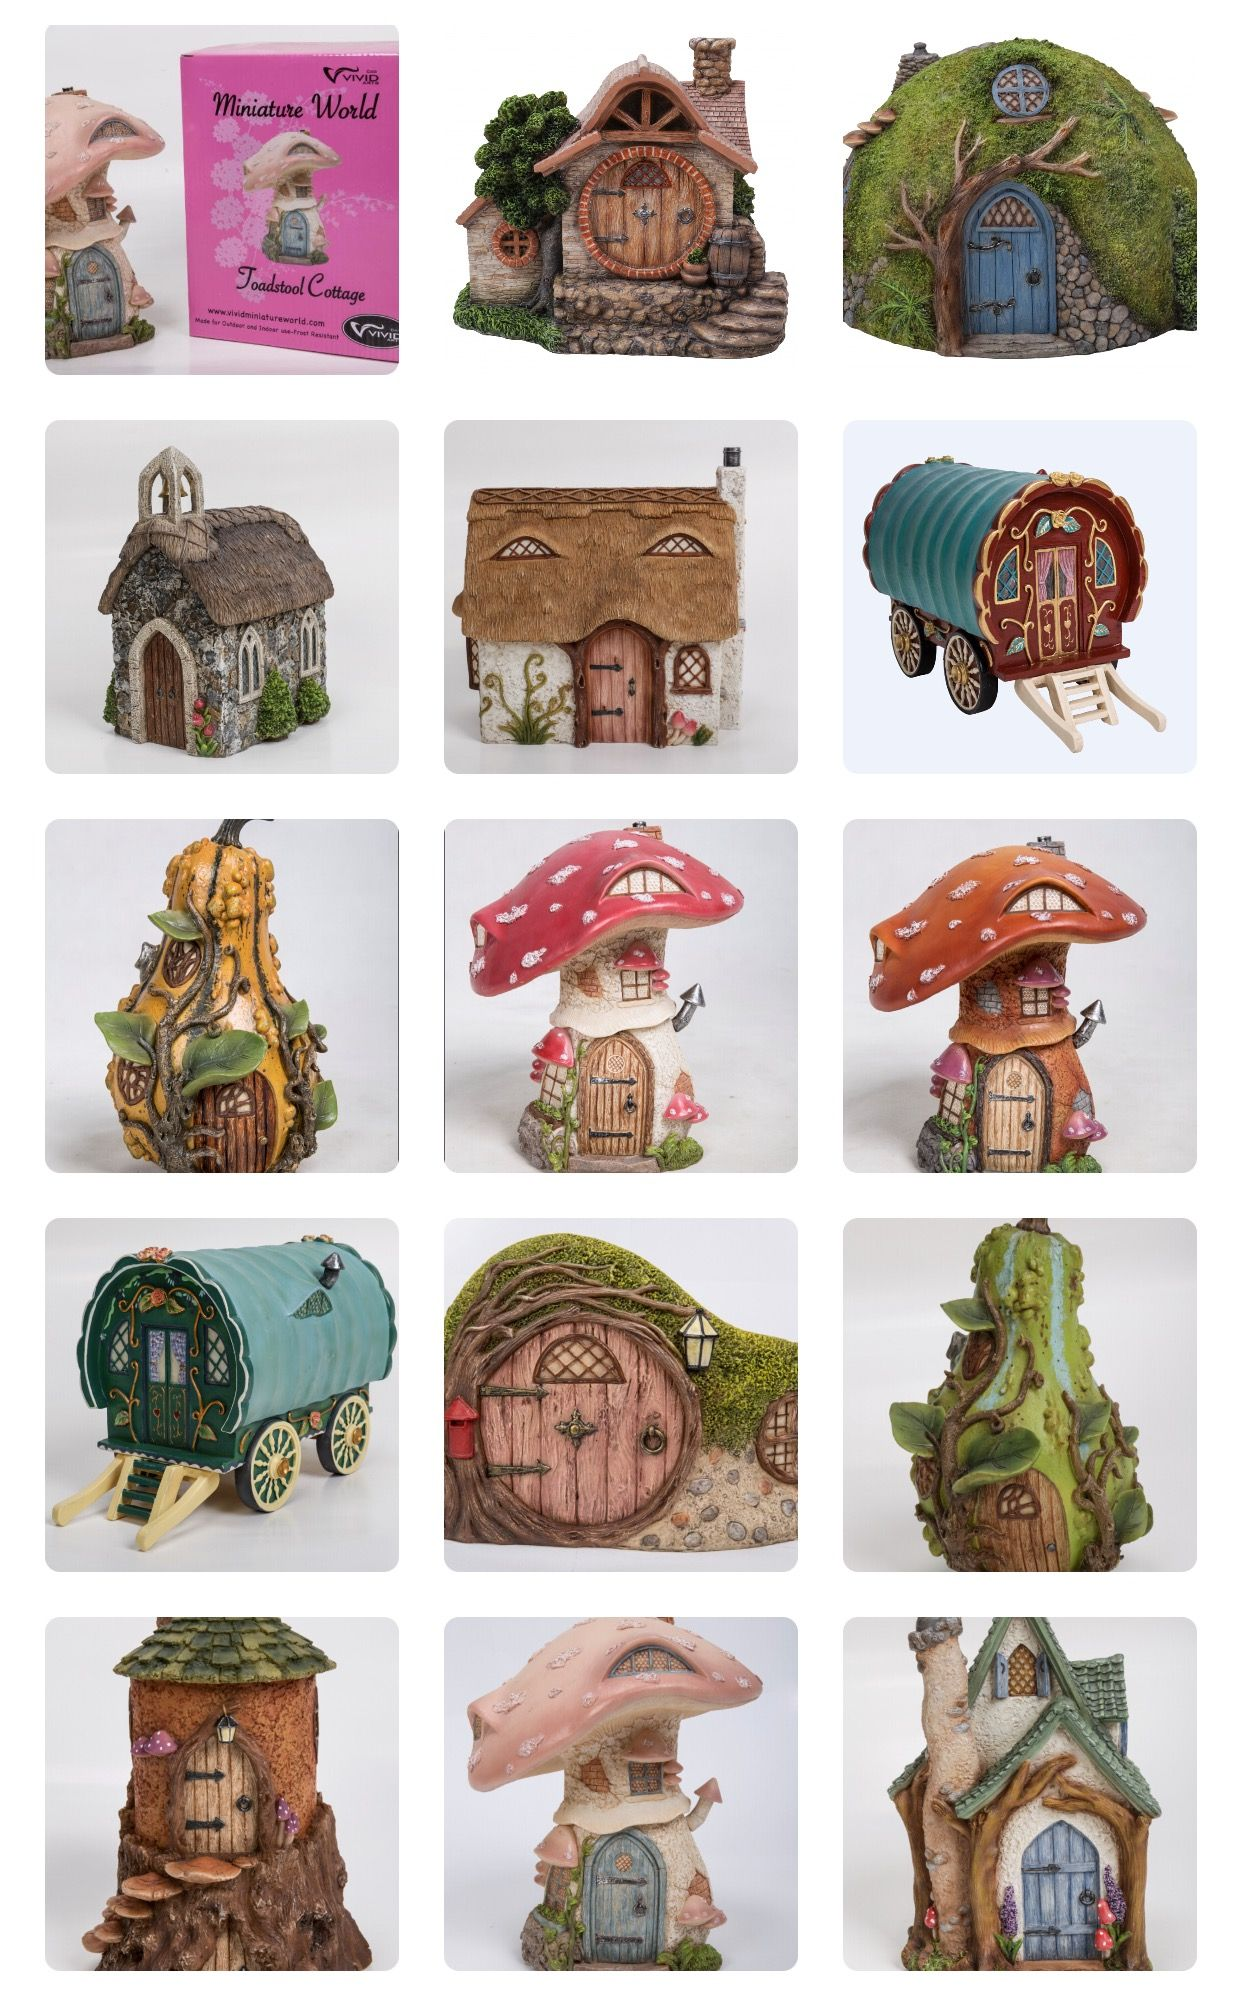 Fairy Garden Items From Miniature World By Arts In The U K